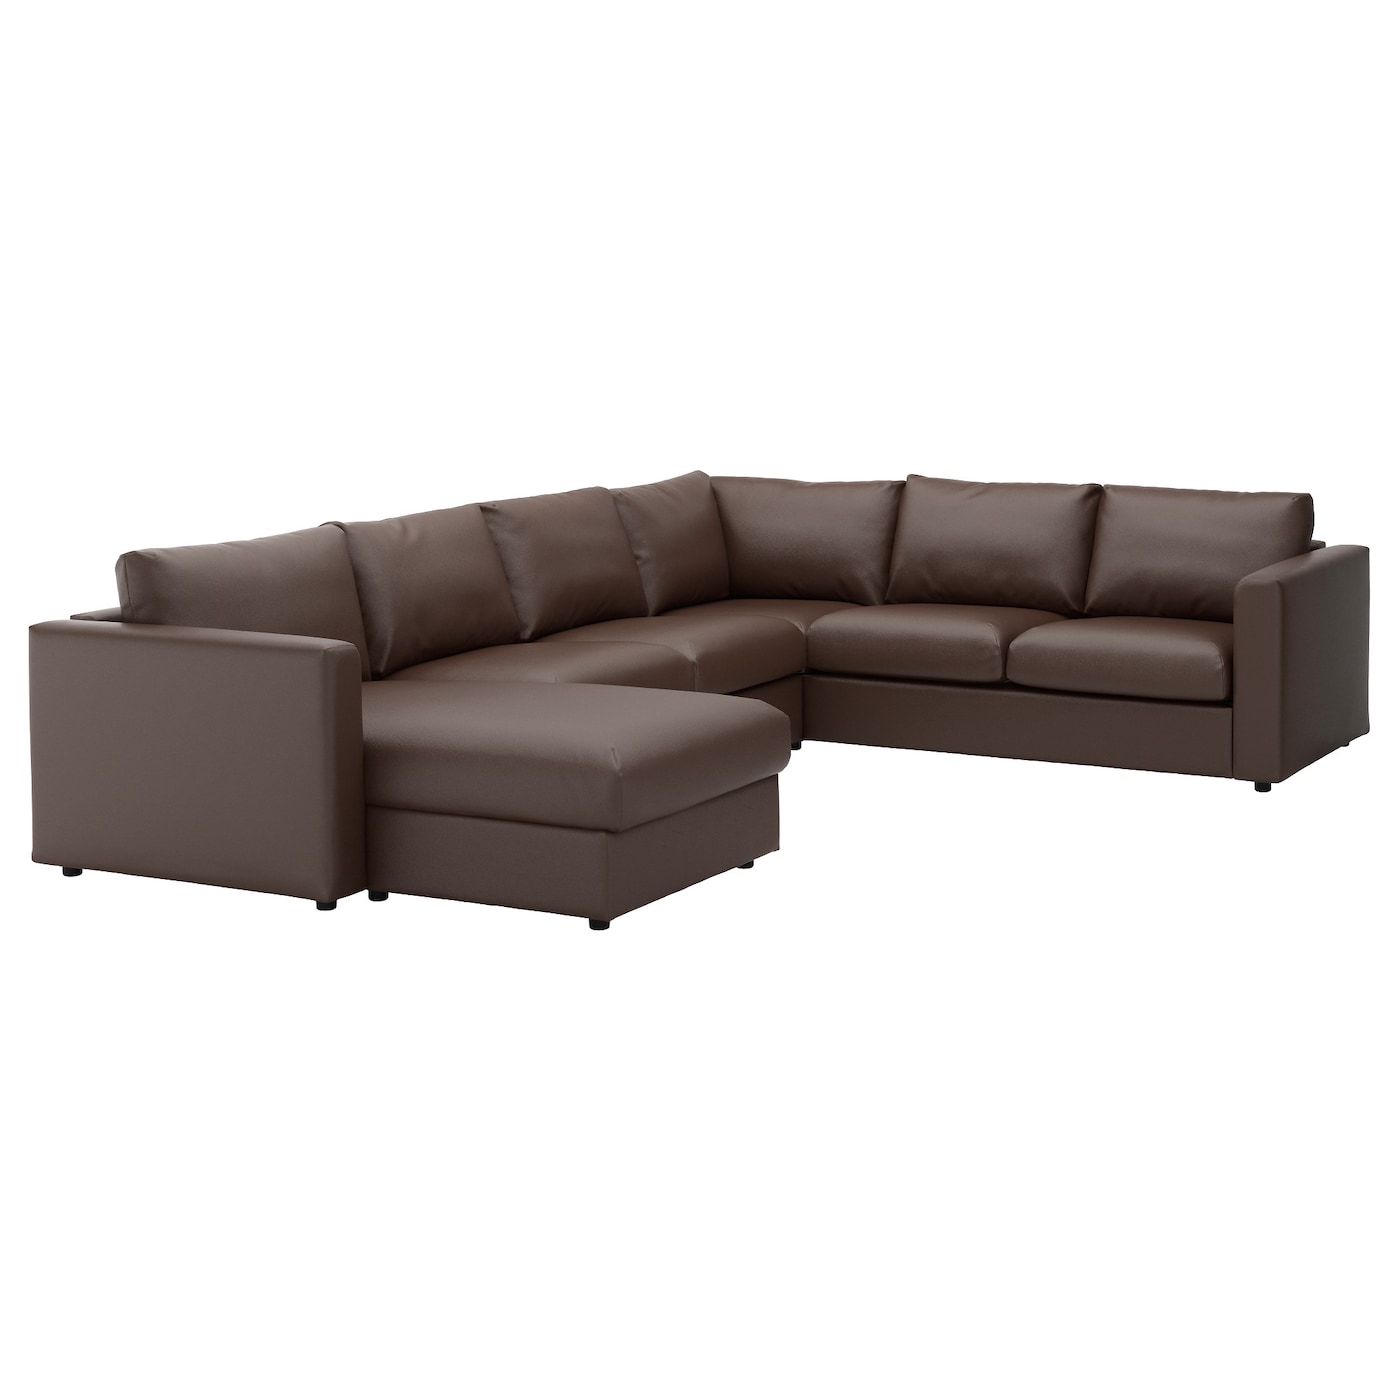 Vimle corner sofa 5 seat with chaise longue farsta dark for Chaise longue bank